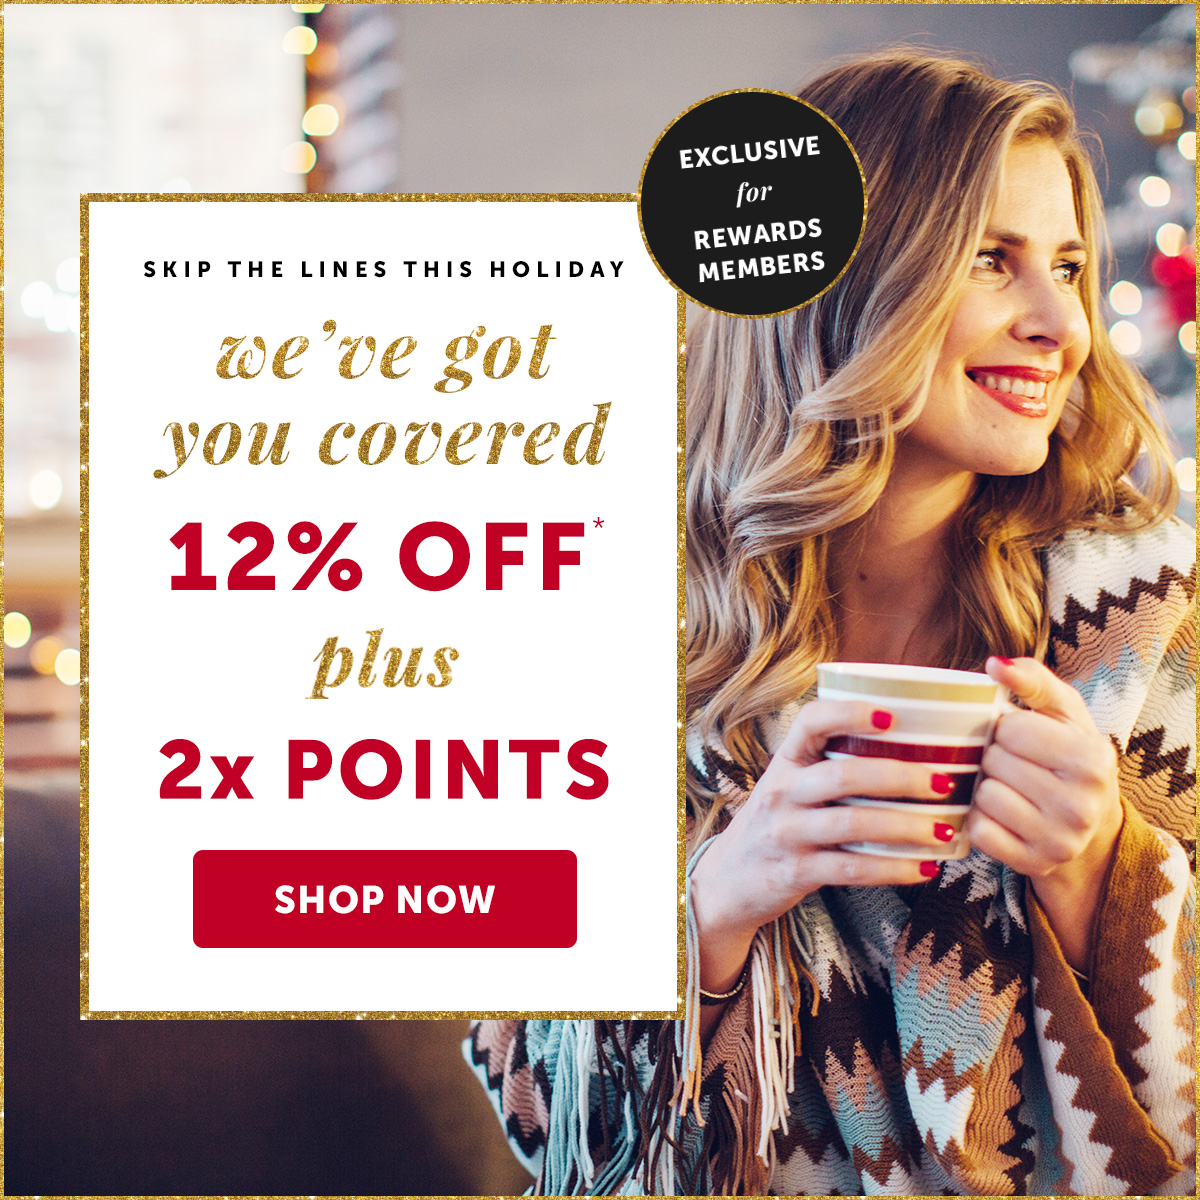 Exclusive Offer: Take 12% OFF + 2X Points